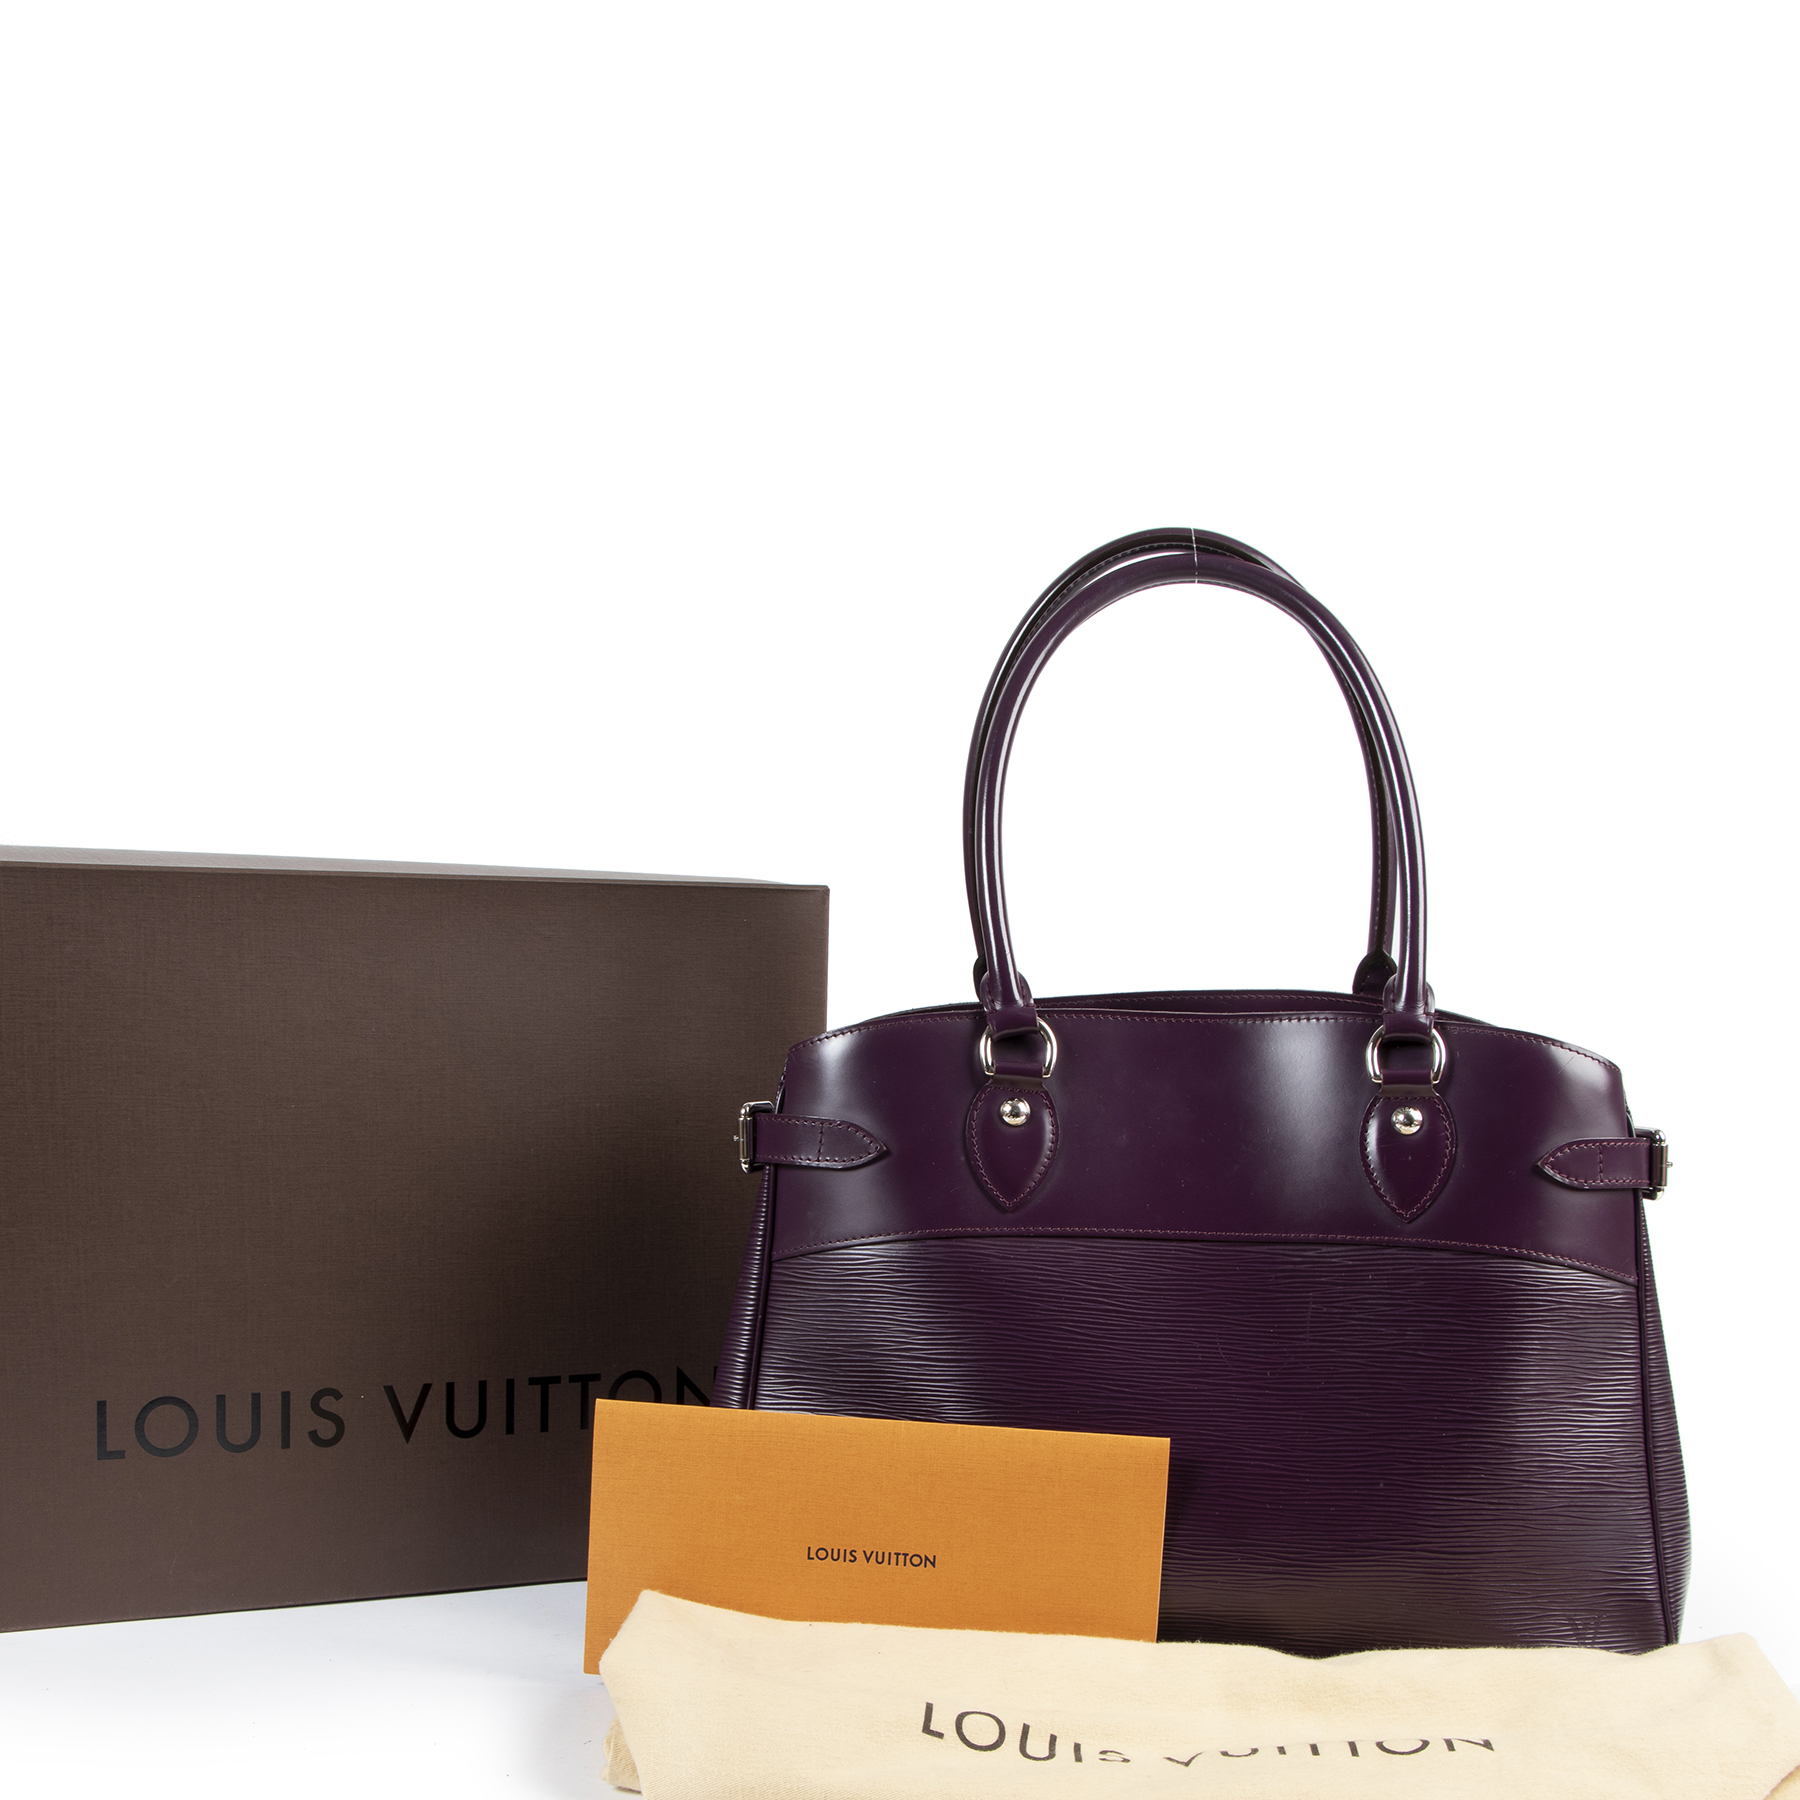 Louis Vuitton Epi Leather Purple Passy GM